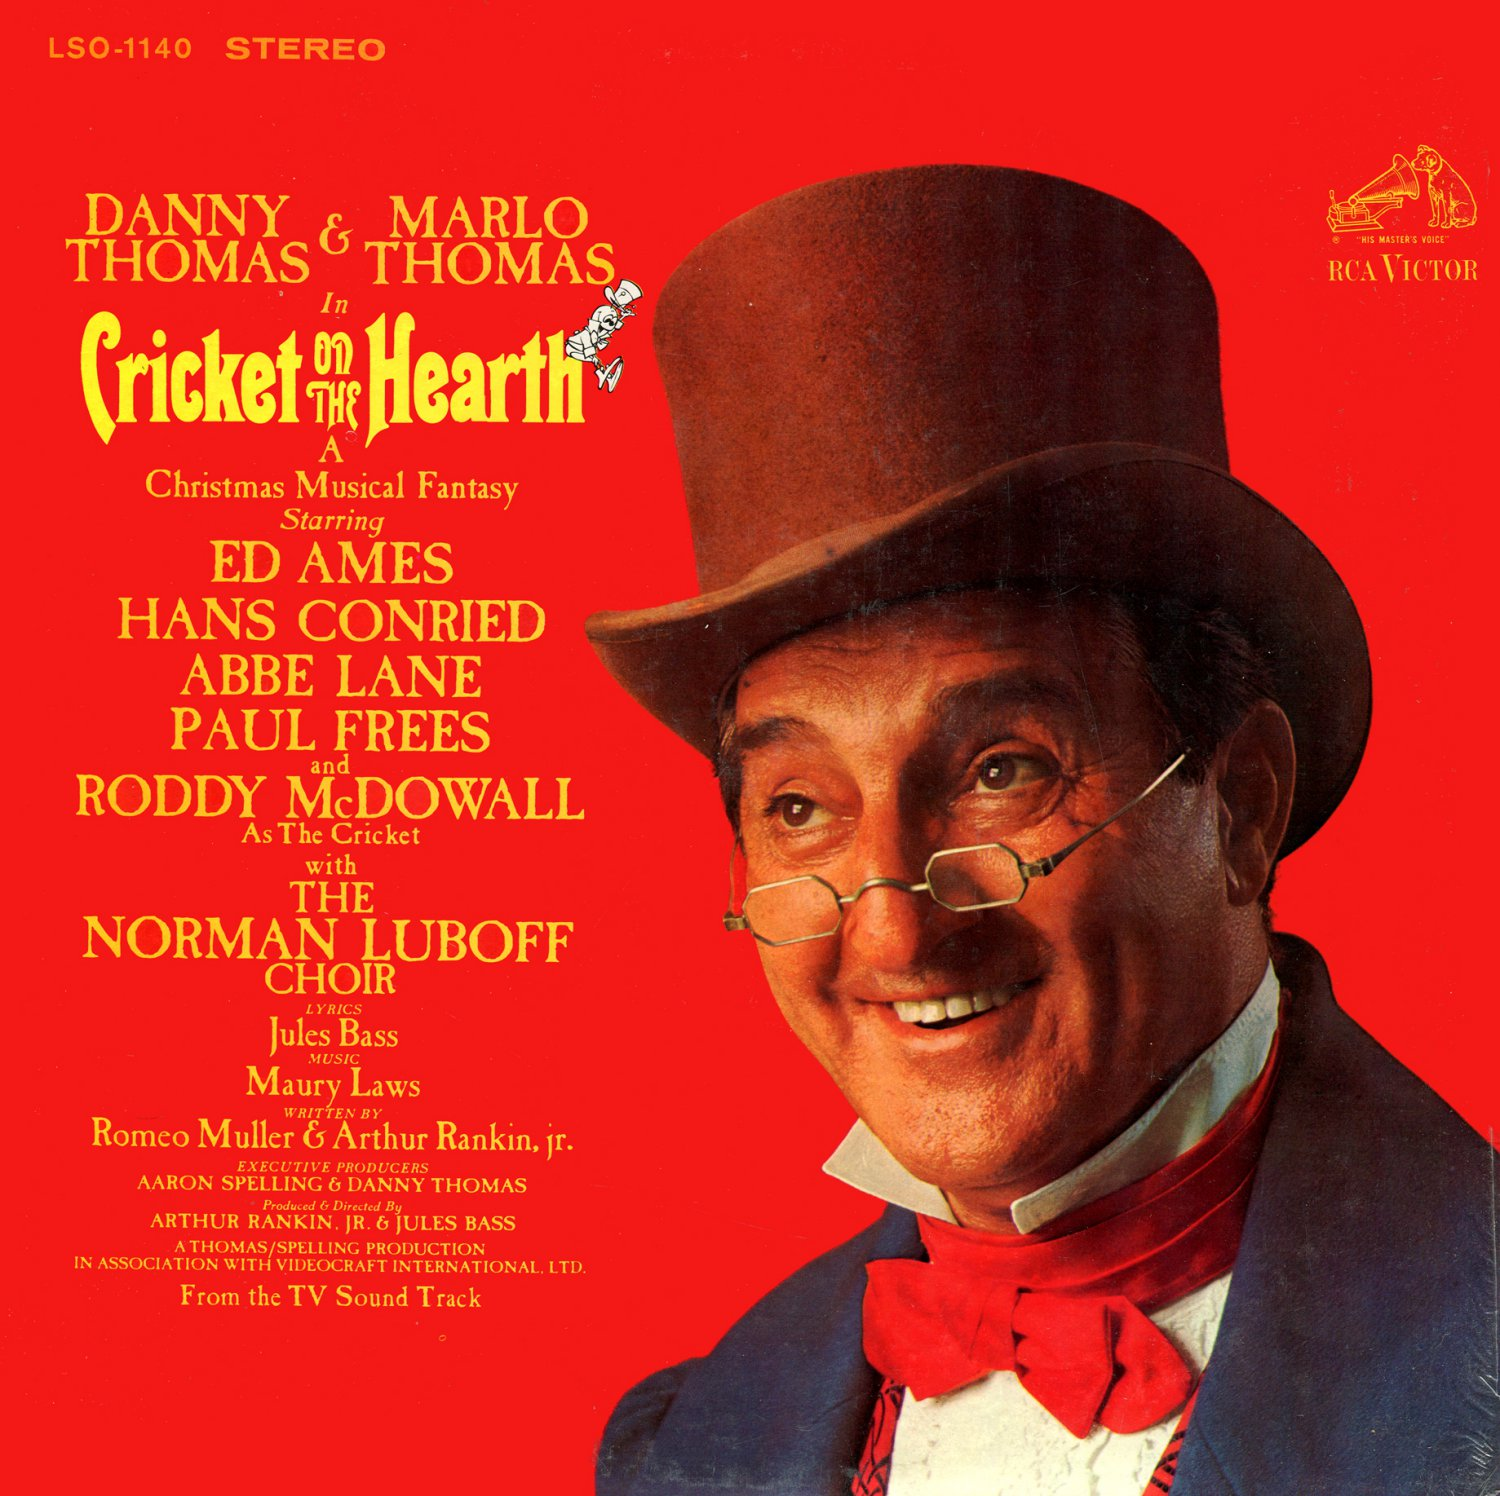 Cricket On The Hearth, A Christmas Musical Fantasy - Original TV Soundtrack, Marlo Thomas LP/CD